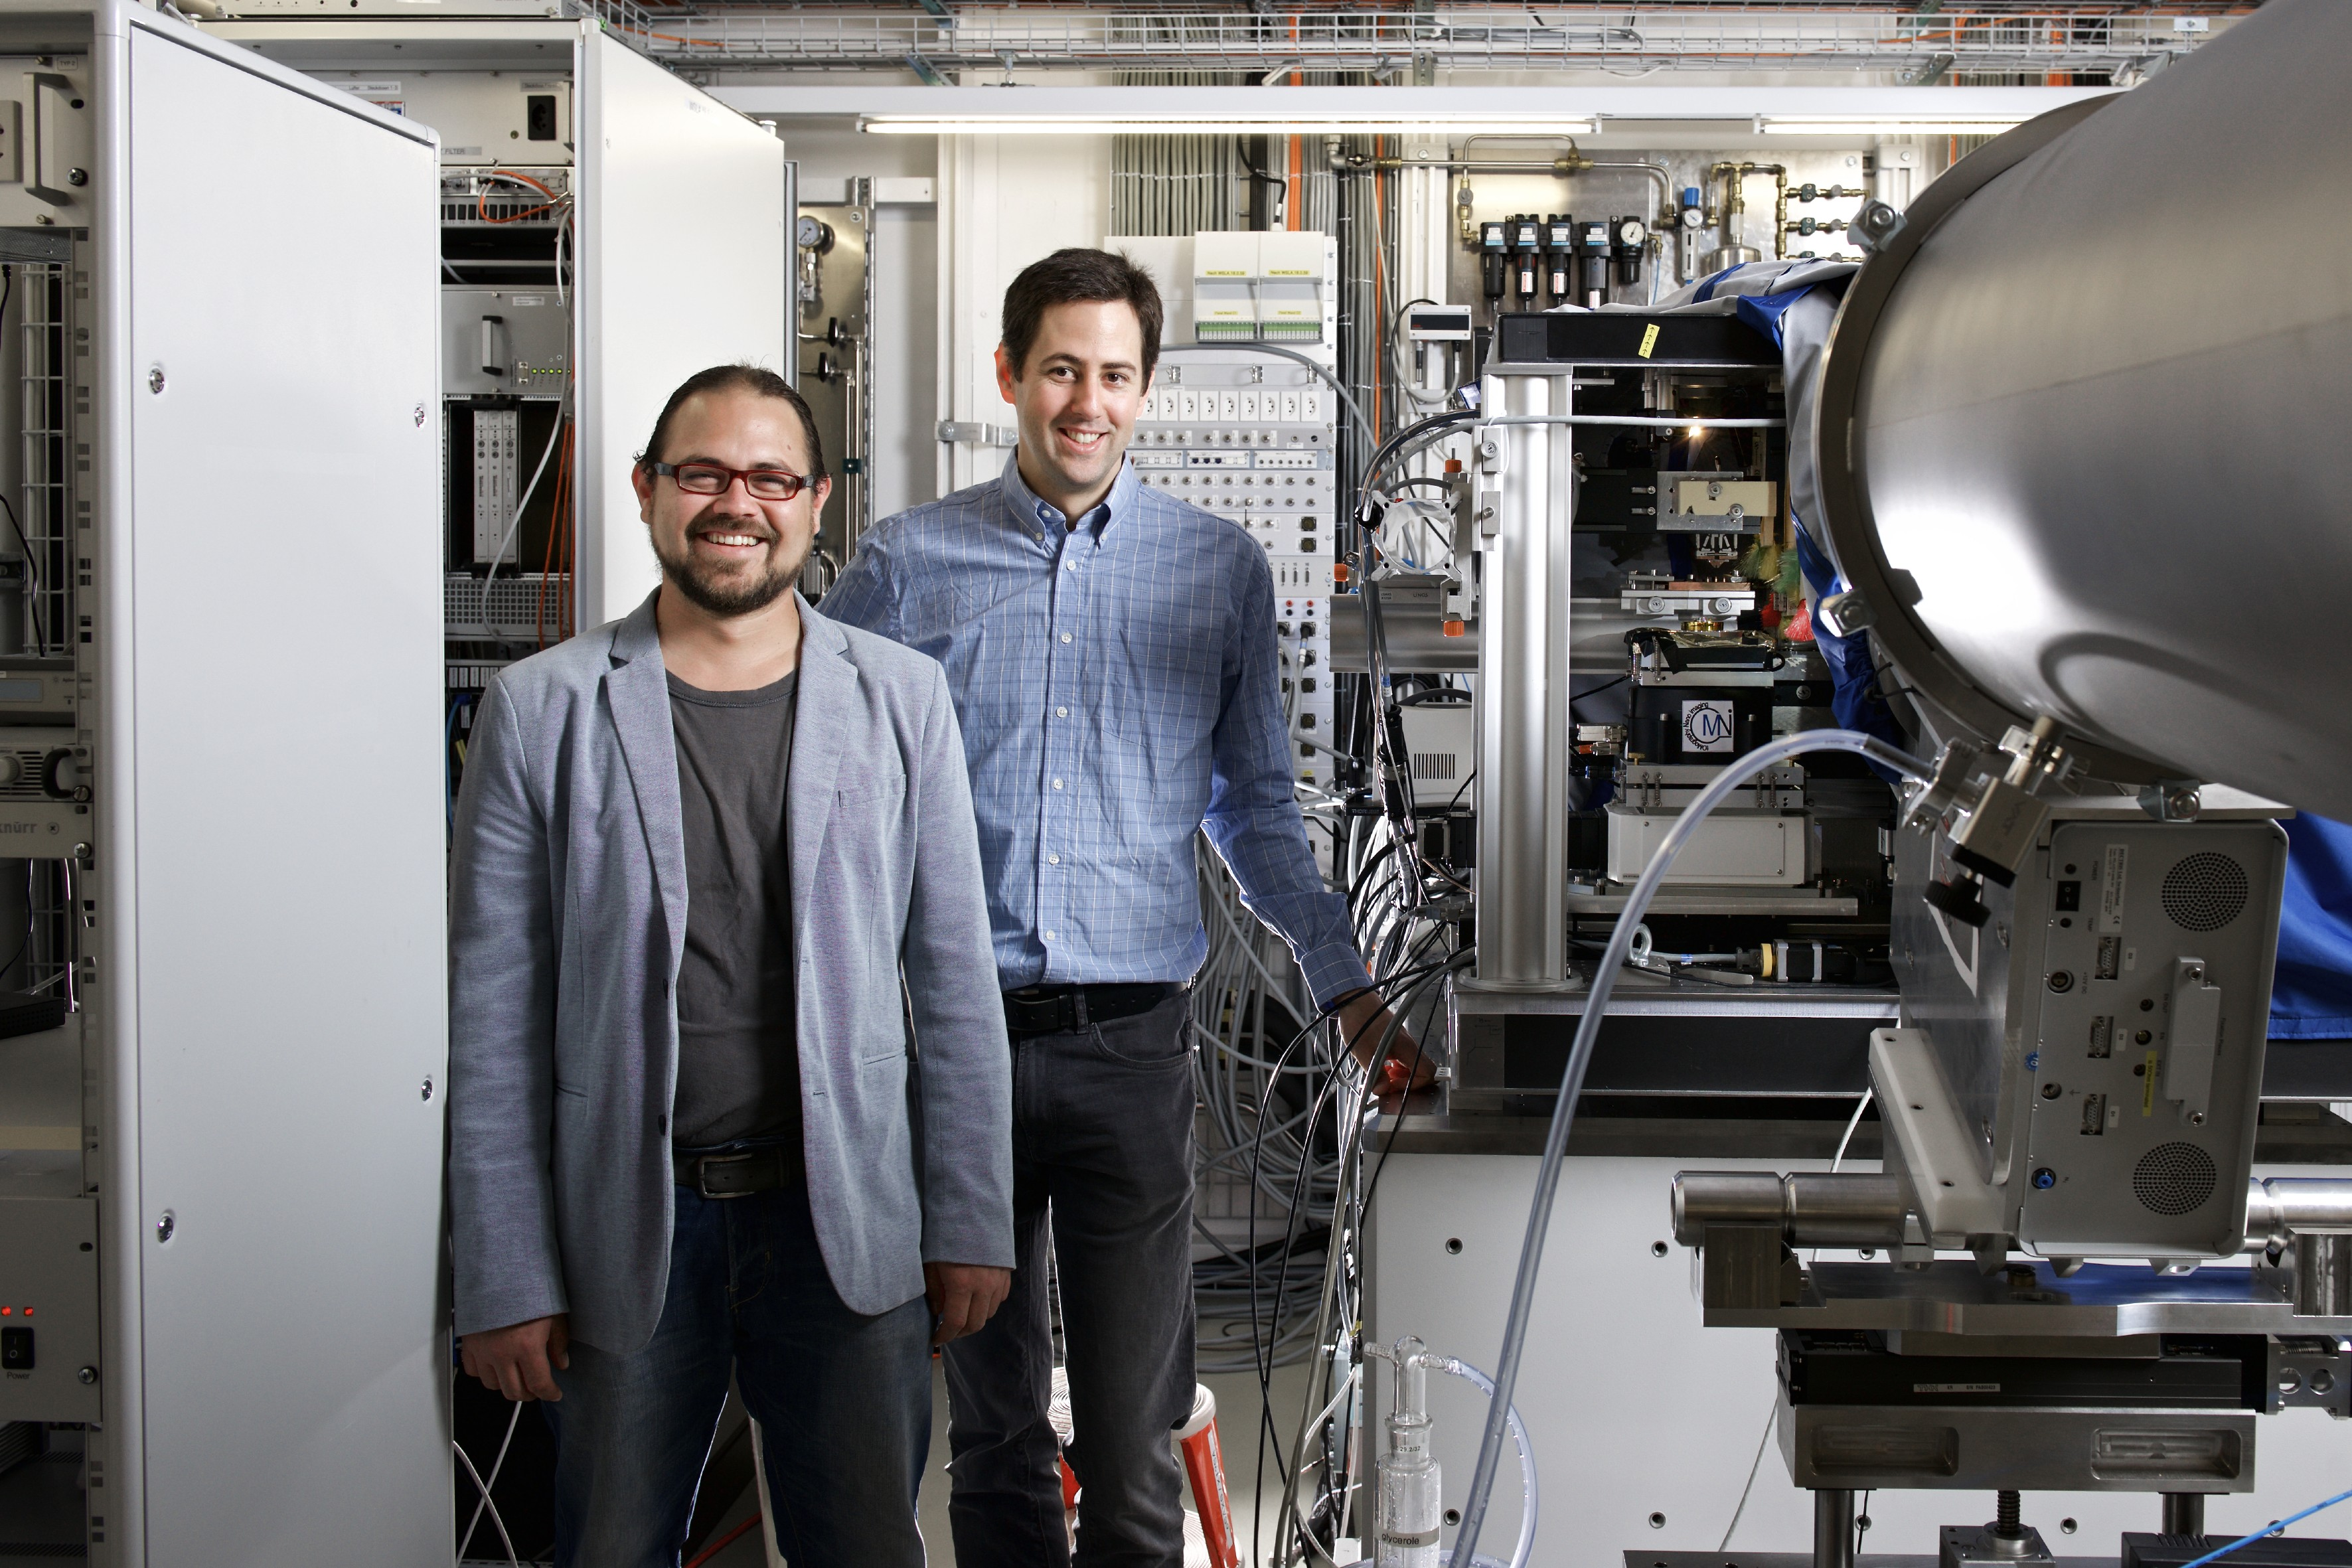 PSI researchers Mirko Holler (right) and Manuel Guizar-Sicairos at the cSAXS beamline of the Swiss Light Source SLS of the Paul Scherrer Institute. Here they made the three-dimensional structure of a microchip visible. (Photo: Paul Scherrer Institute/Markus Fischer)